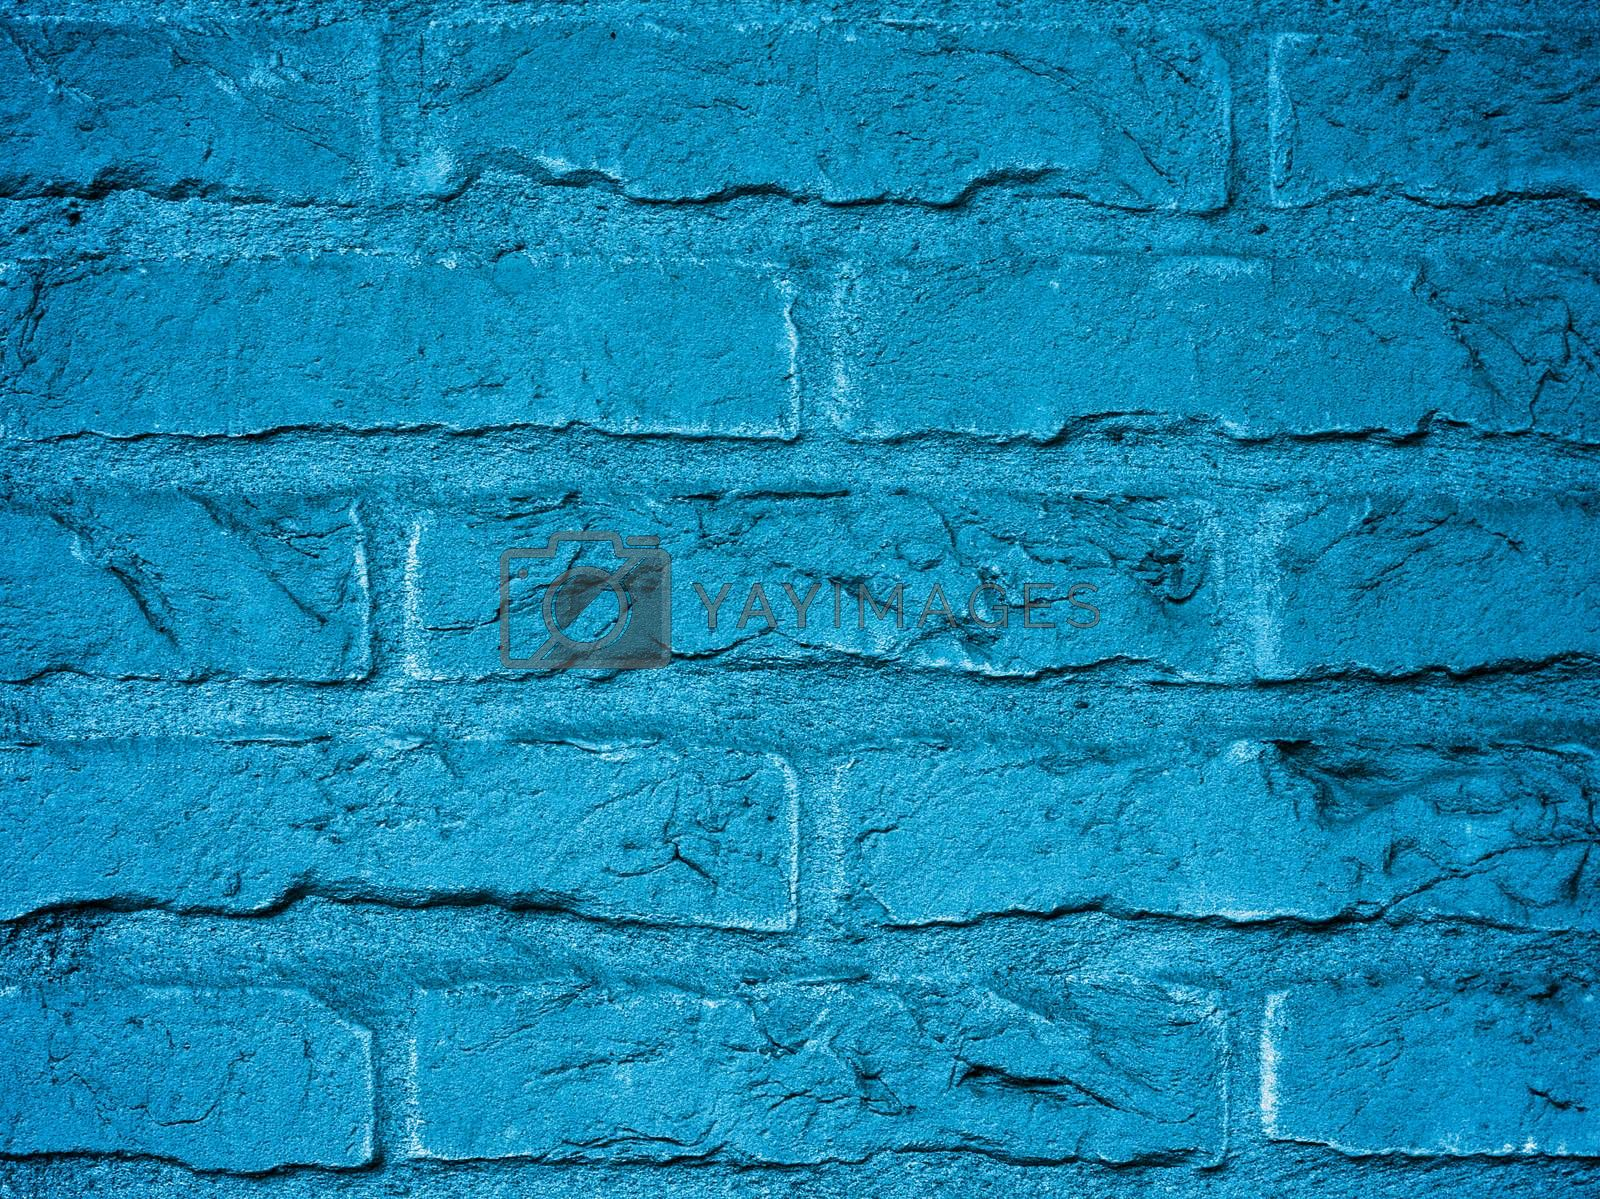 Background of Blue Brick Wall with Cracked Surface and Cobweb in Corners closeup Outdoors